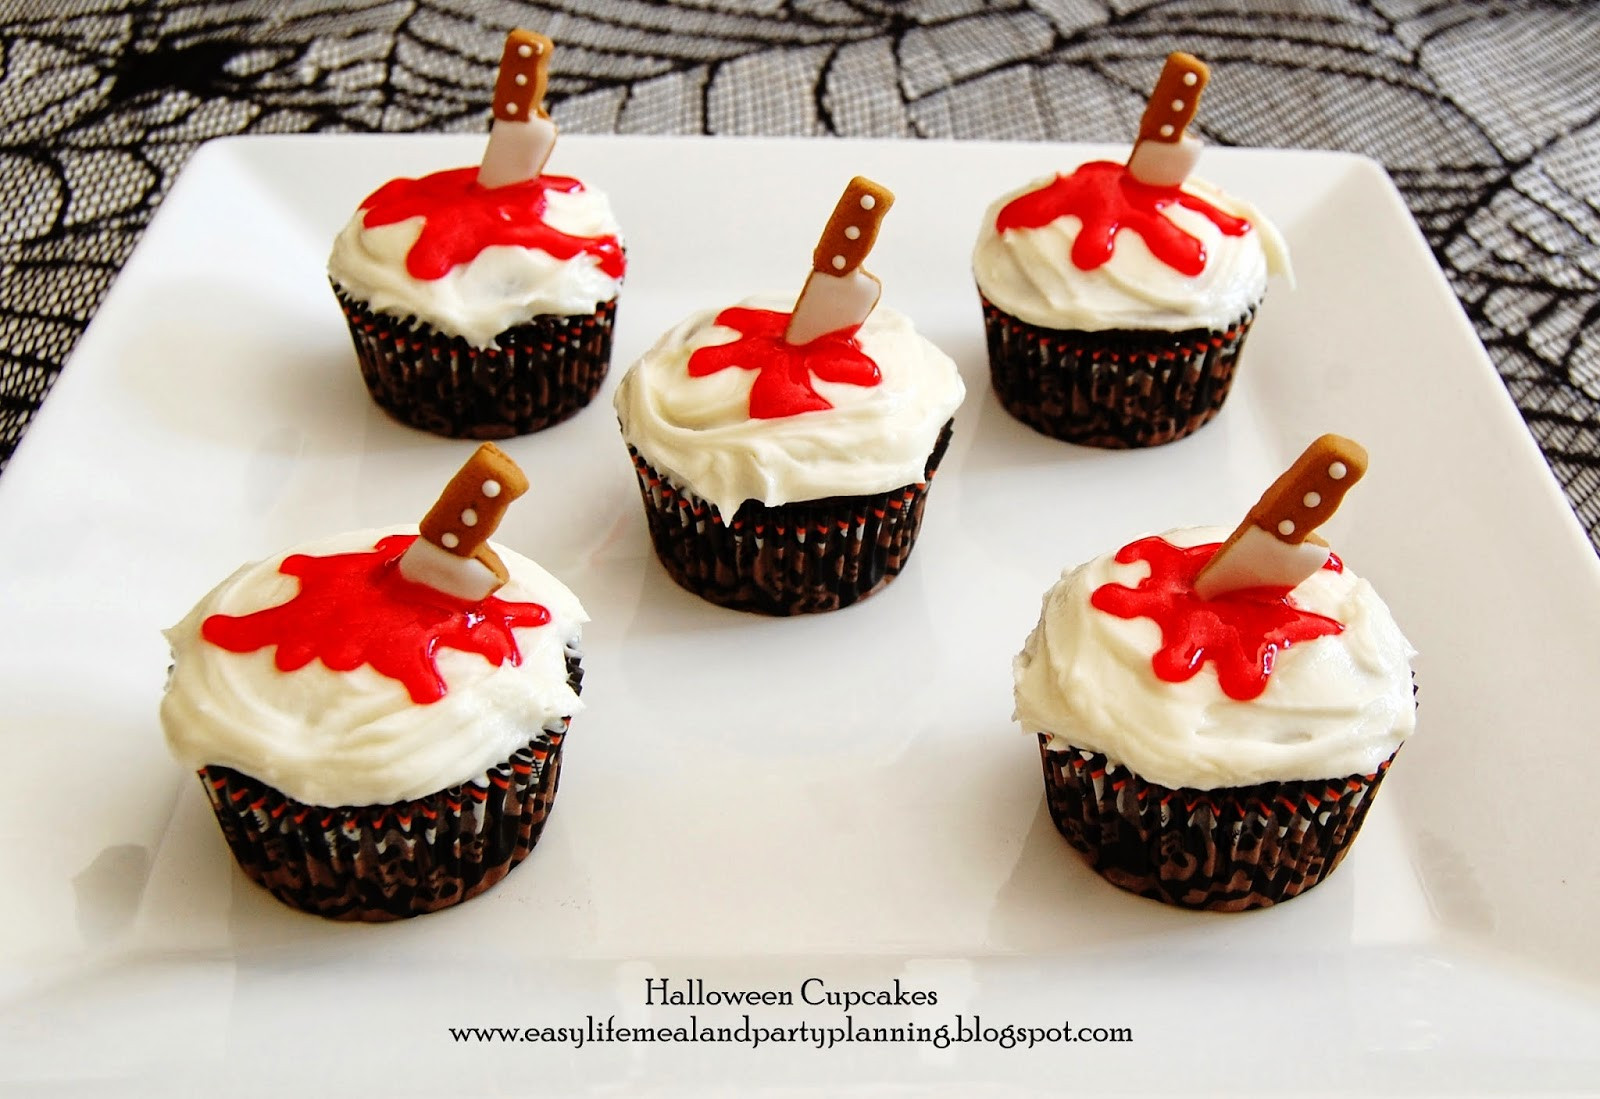 Halloween Cookies And Cupcakes  Easy Life Meal and Party Planning October 2013